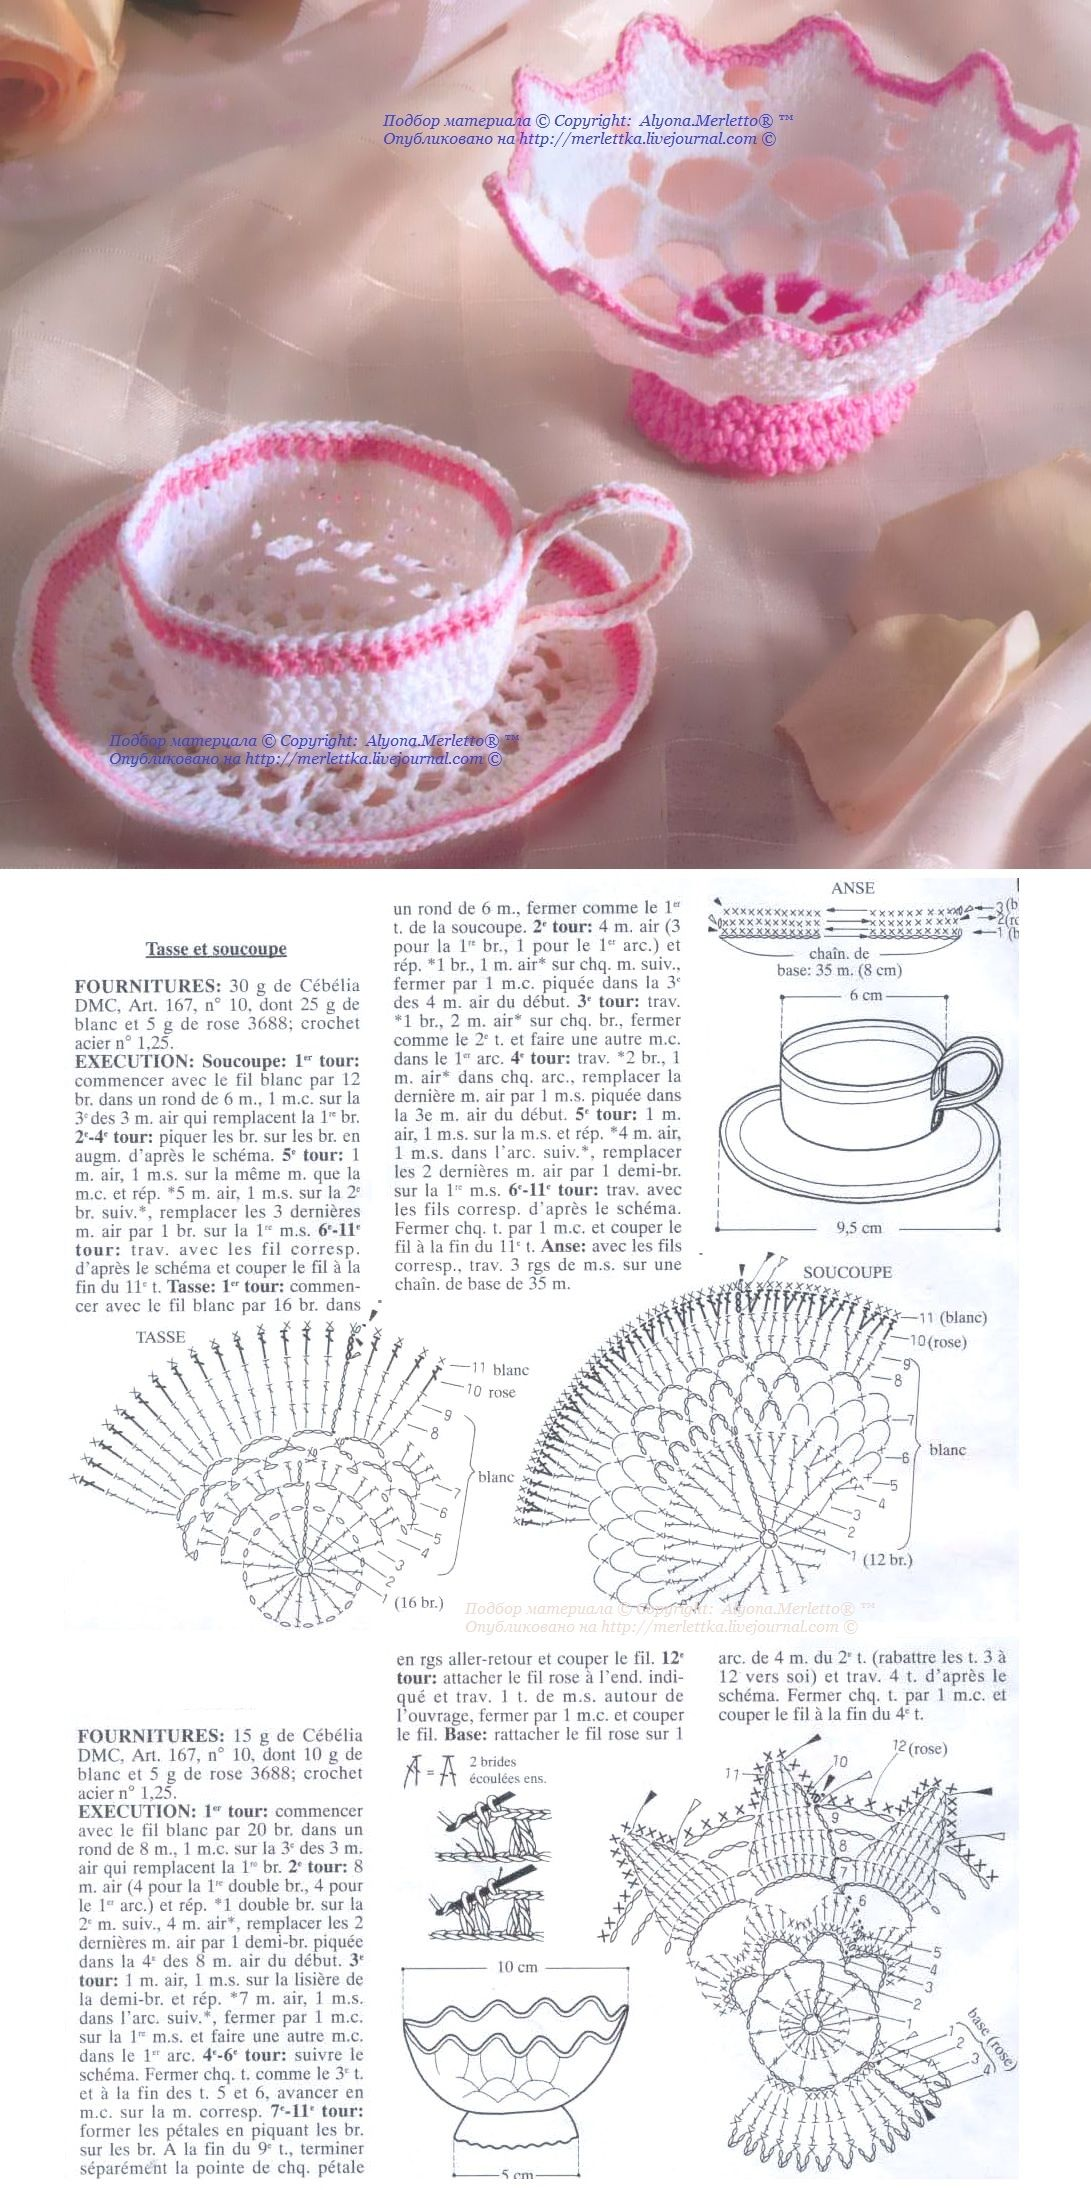 knitted ware for decoration | Crochet patterns | Pinterest | Patrón ...